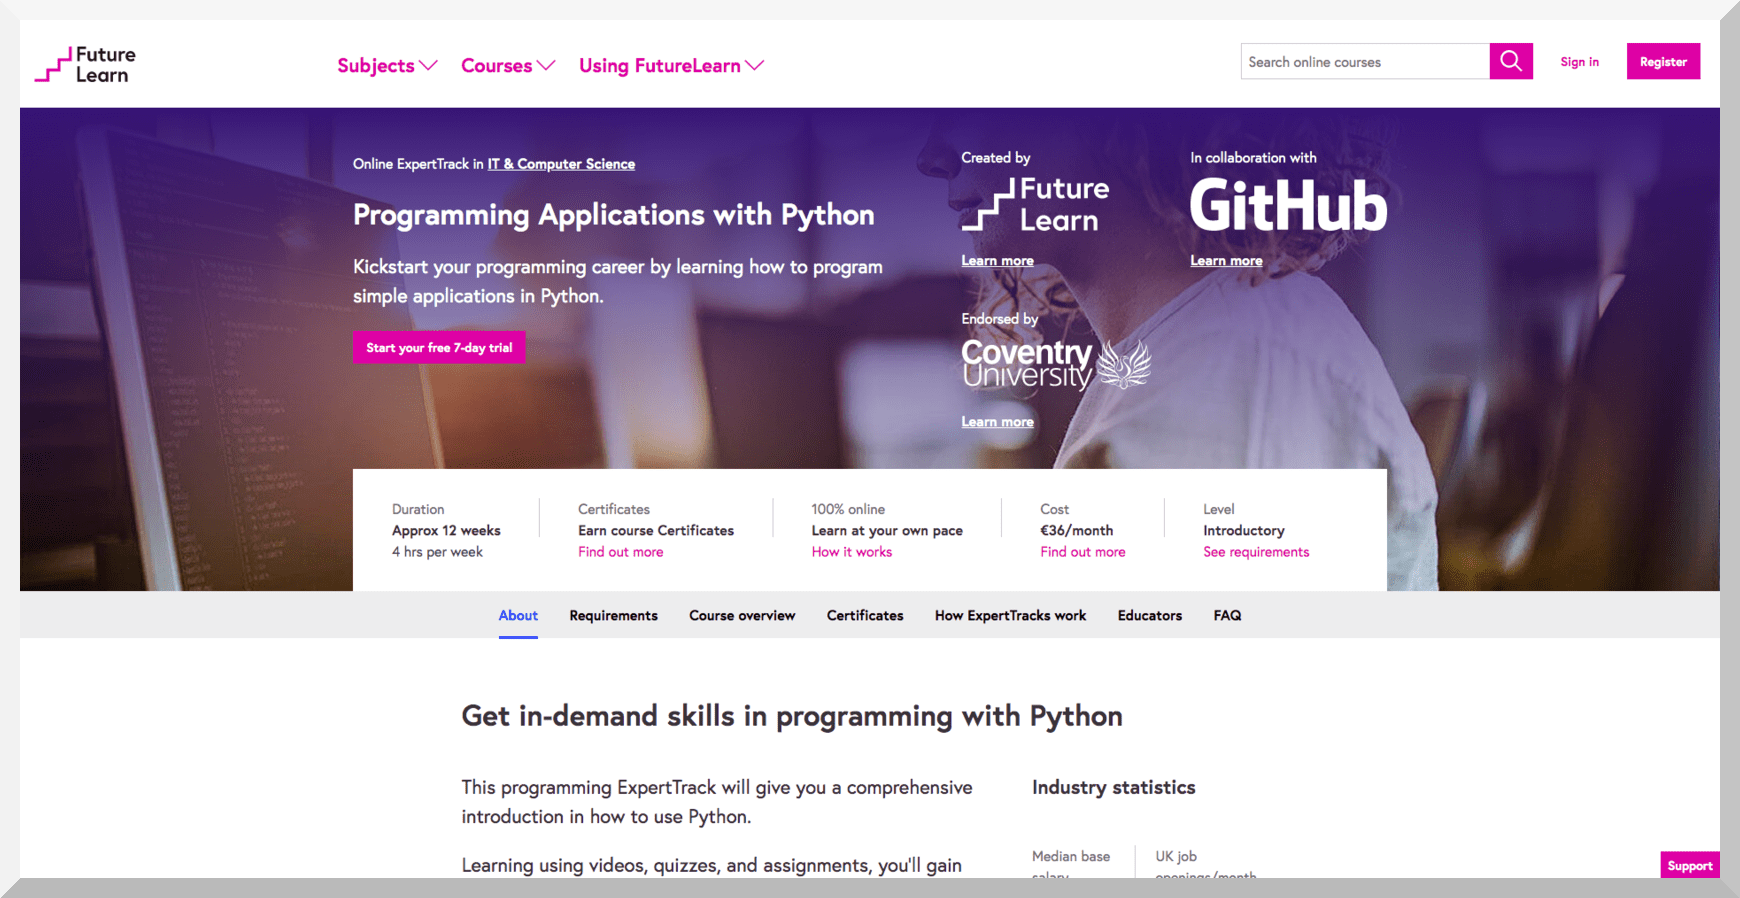 Programming Applications with Python by Coventry University – Futurelearn